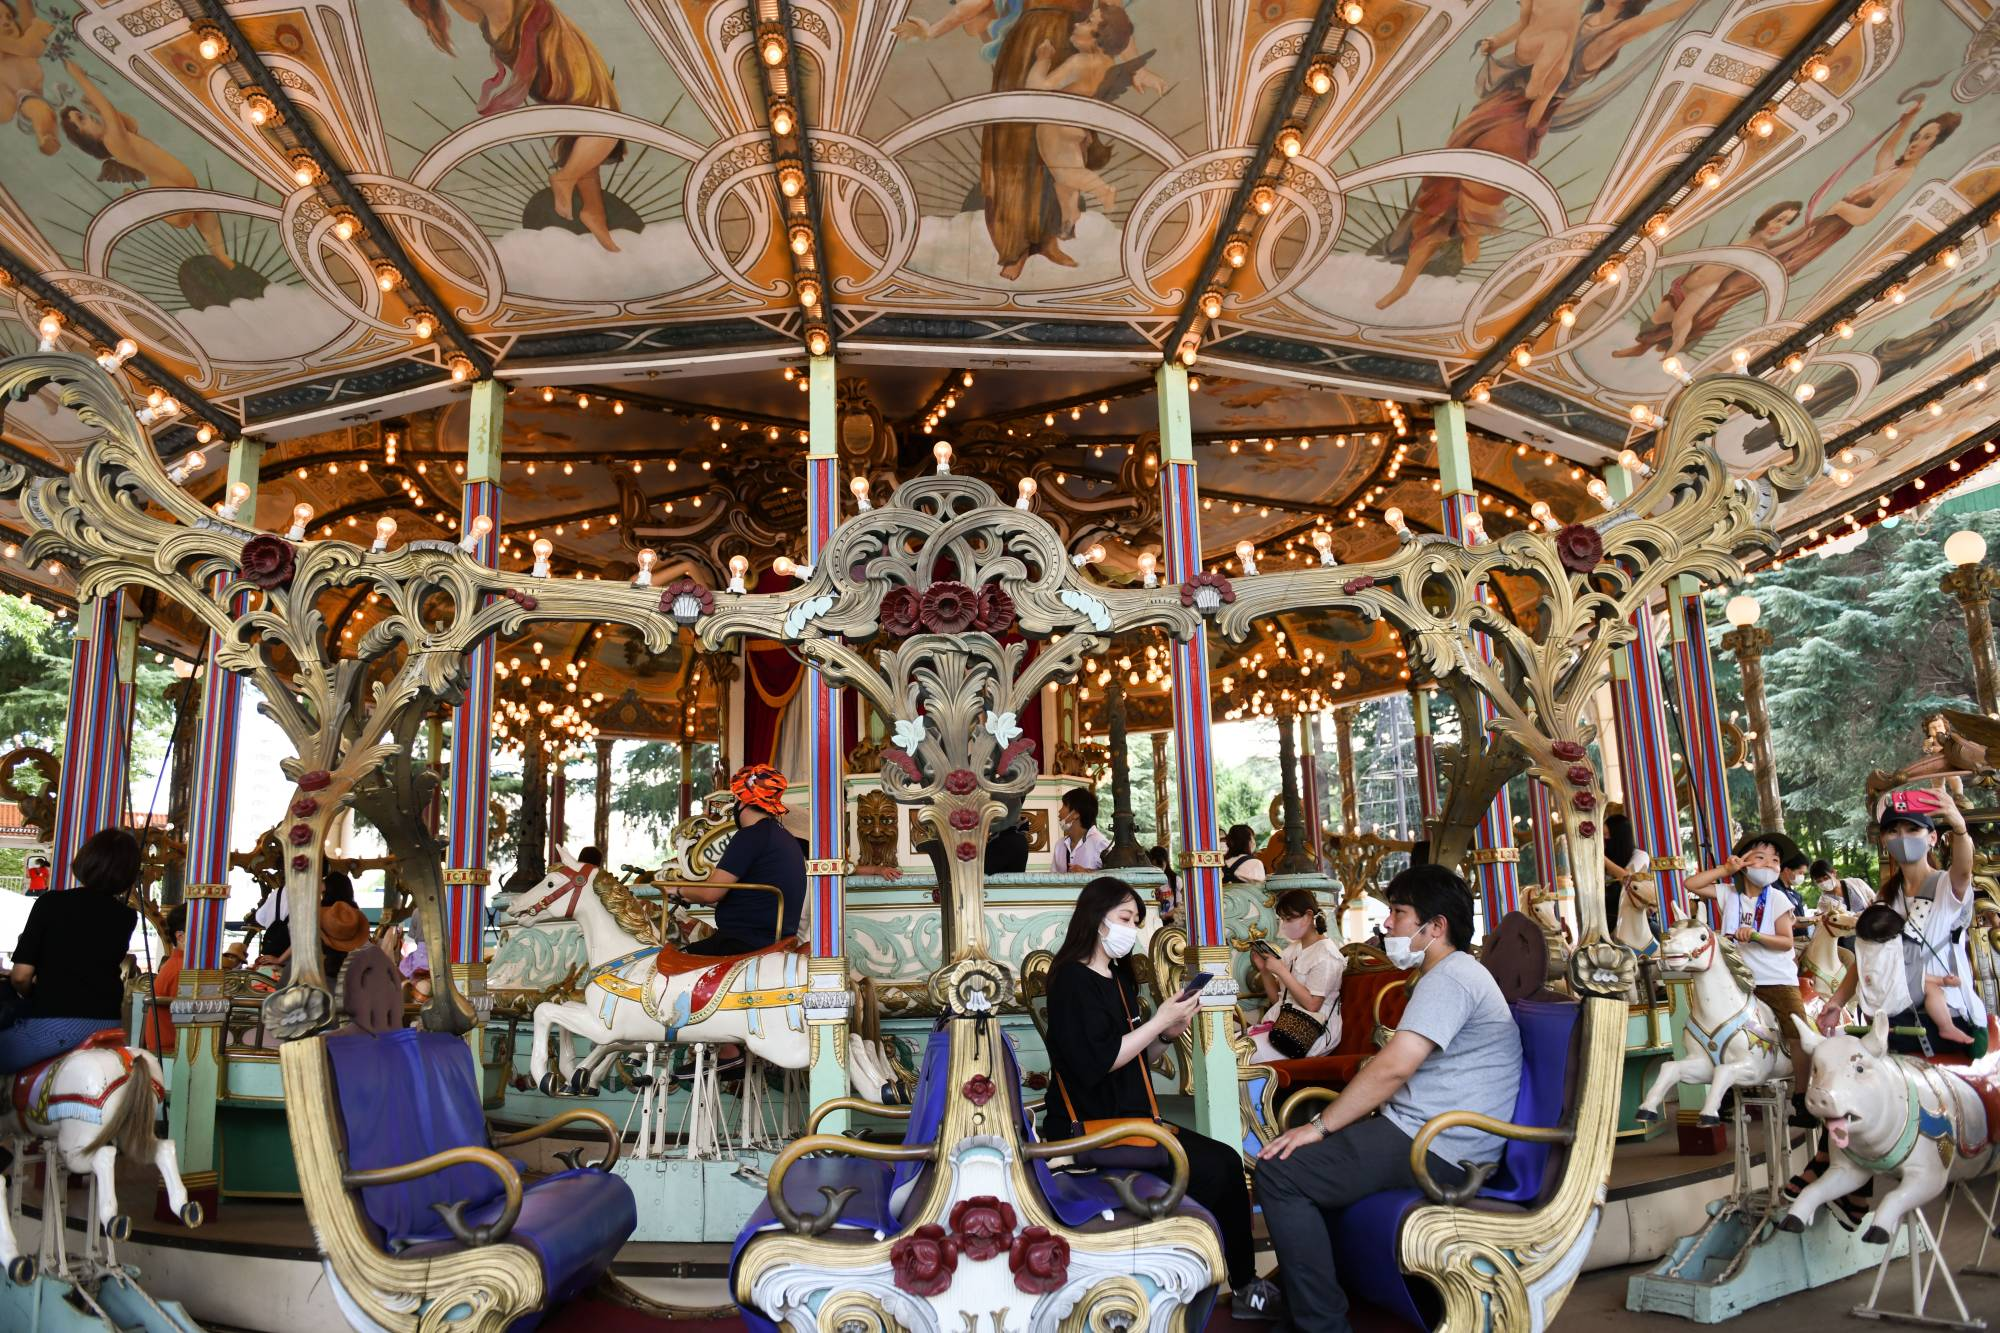 The 113-year-old merry-go-round, which arrived in Tokyo after stints in Germany and Coney Island, is now in storage. | NORIKO HAYASHI / THE NEW YORK TIMES